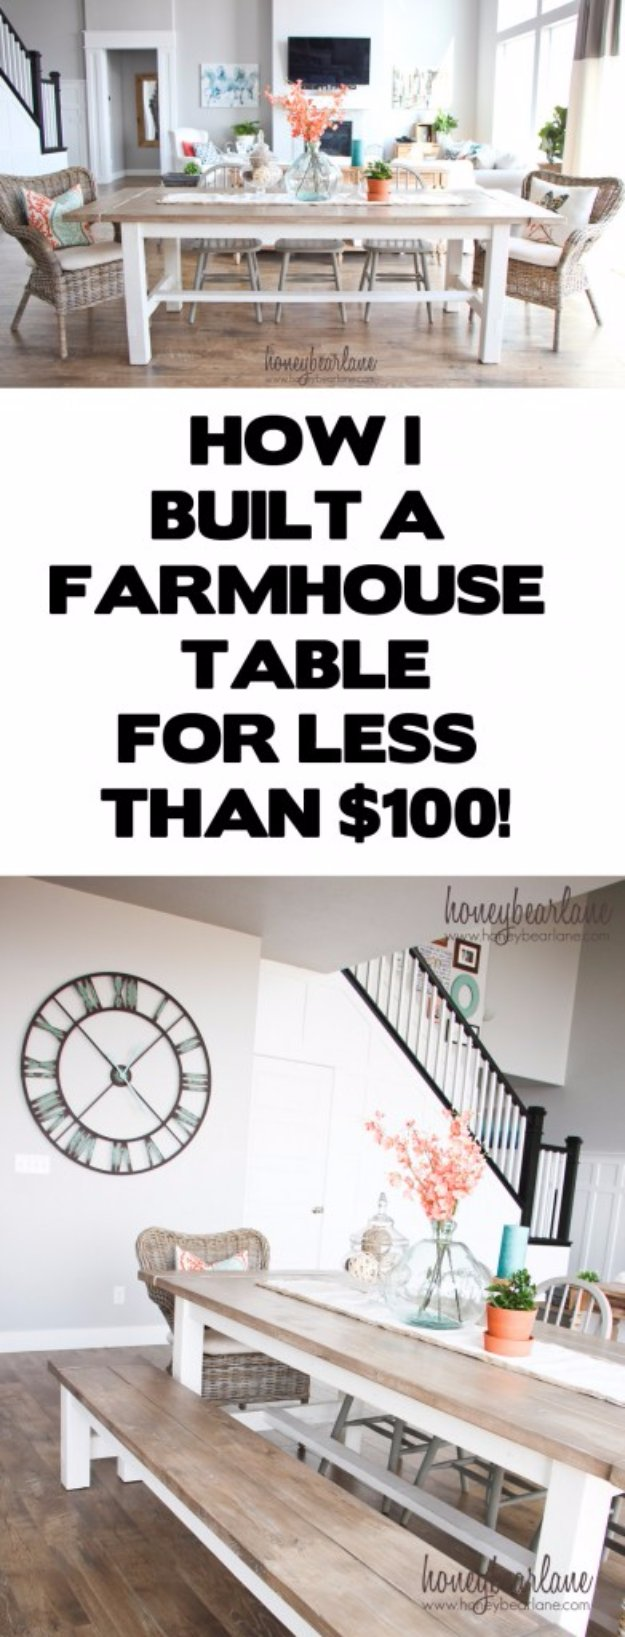 36 DIY Dining Room Decor Ideas - Furniture, Rugs and Art to ...